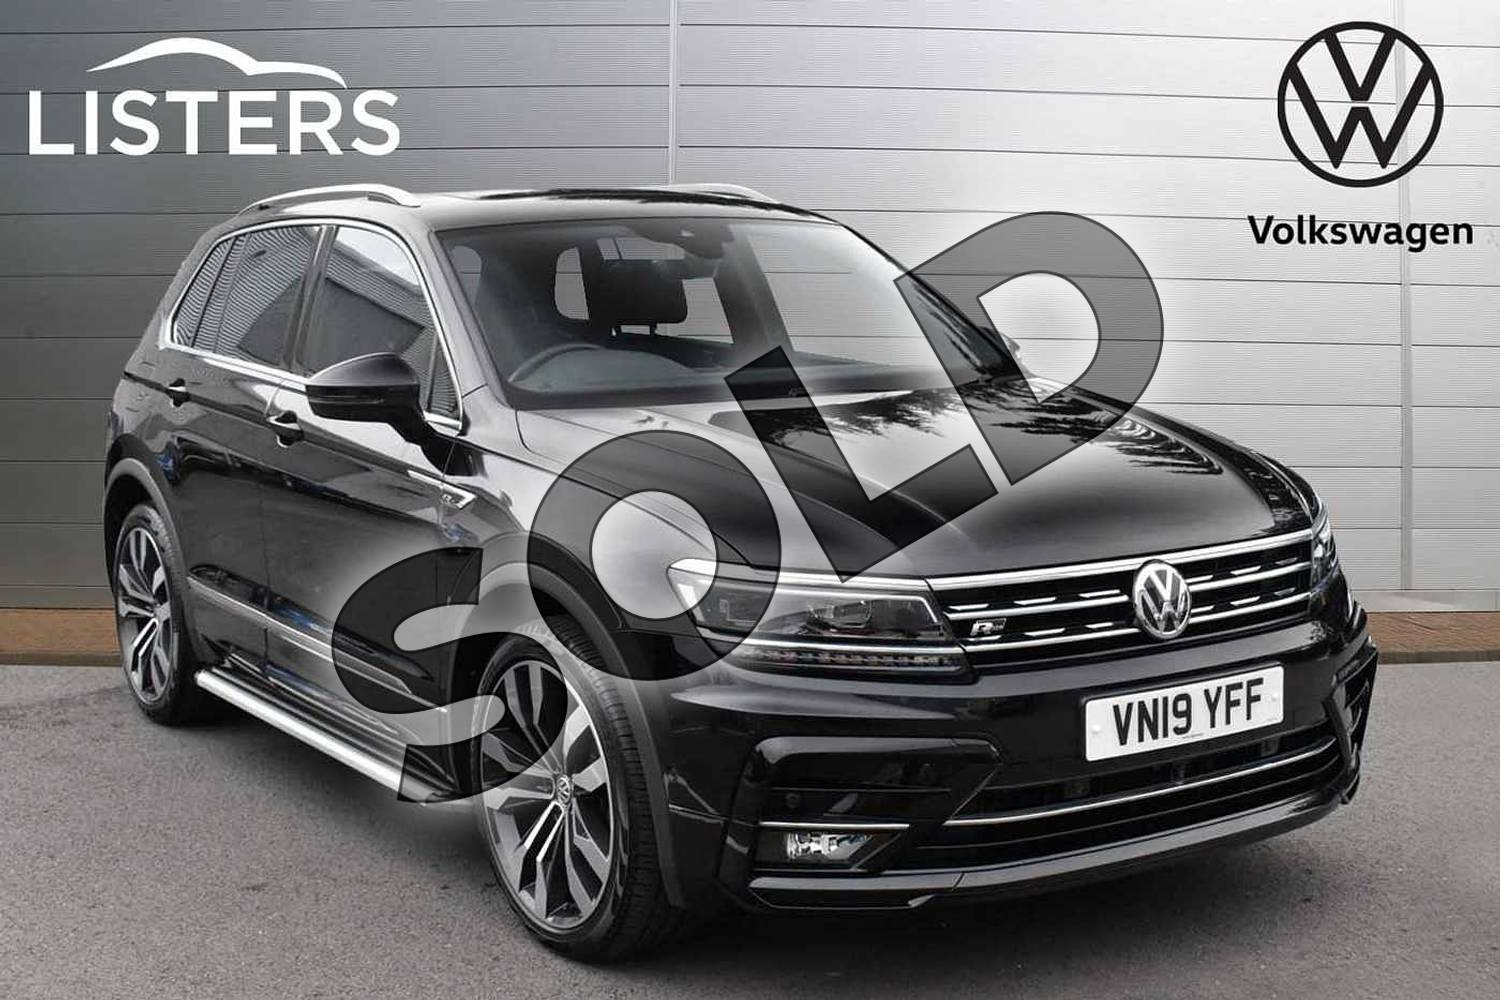 volkswagen tiguan diesel 2 0 tdi 150 4motion r line tech 5dr dsg for sale at listers volkswagen. Black Bedroom Furniture Sets. Home Design Ideas